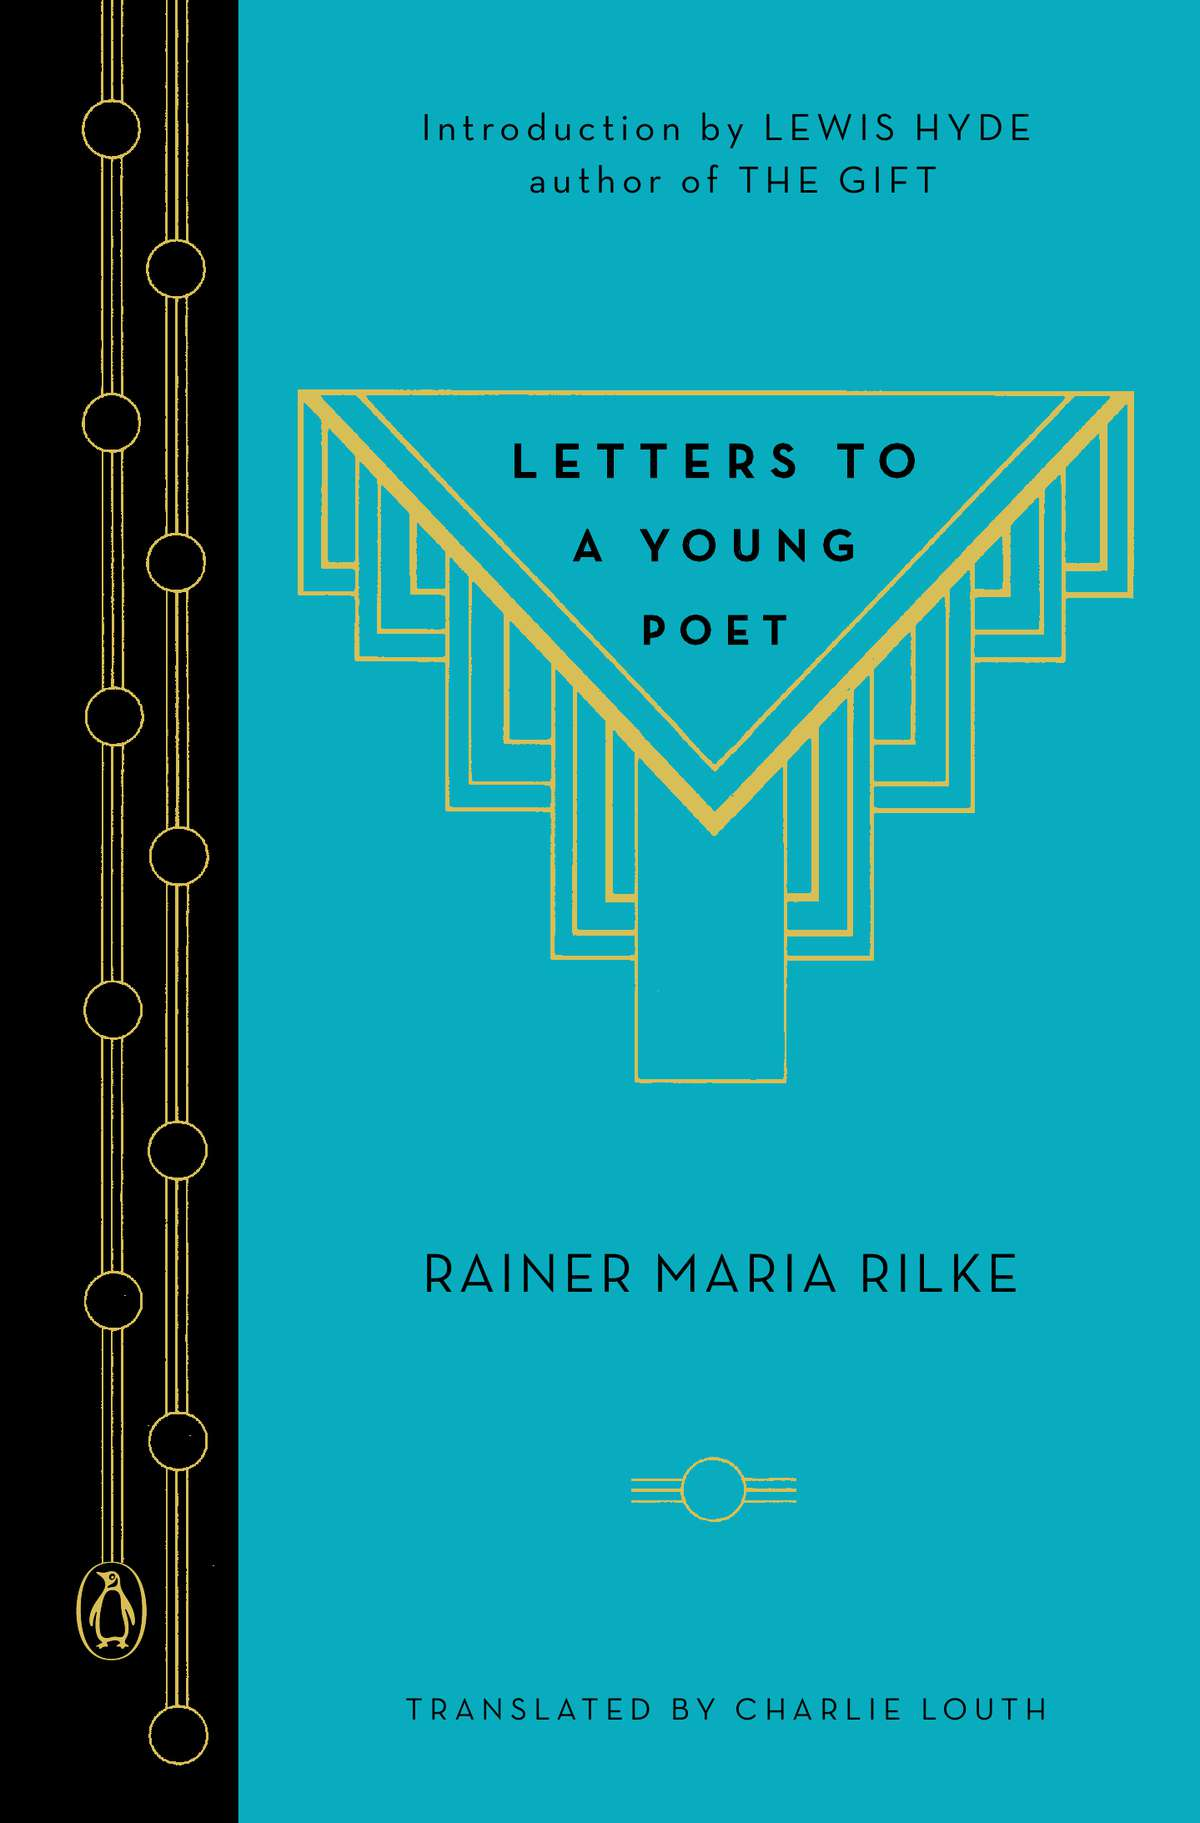 Imagini pentru letters to a young poet